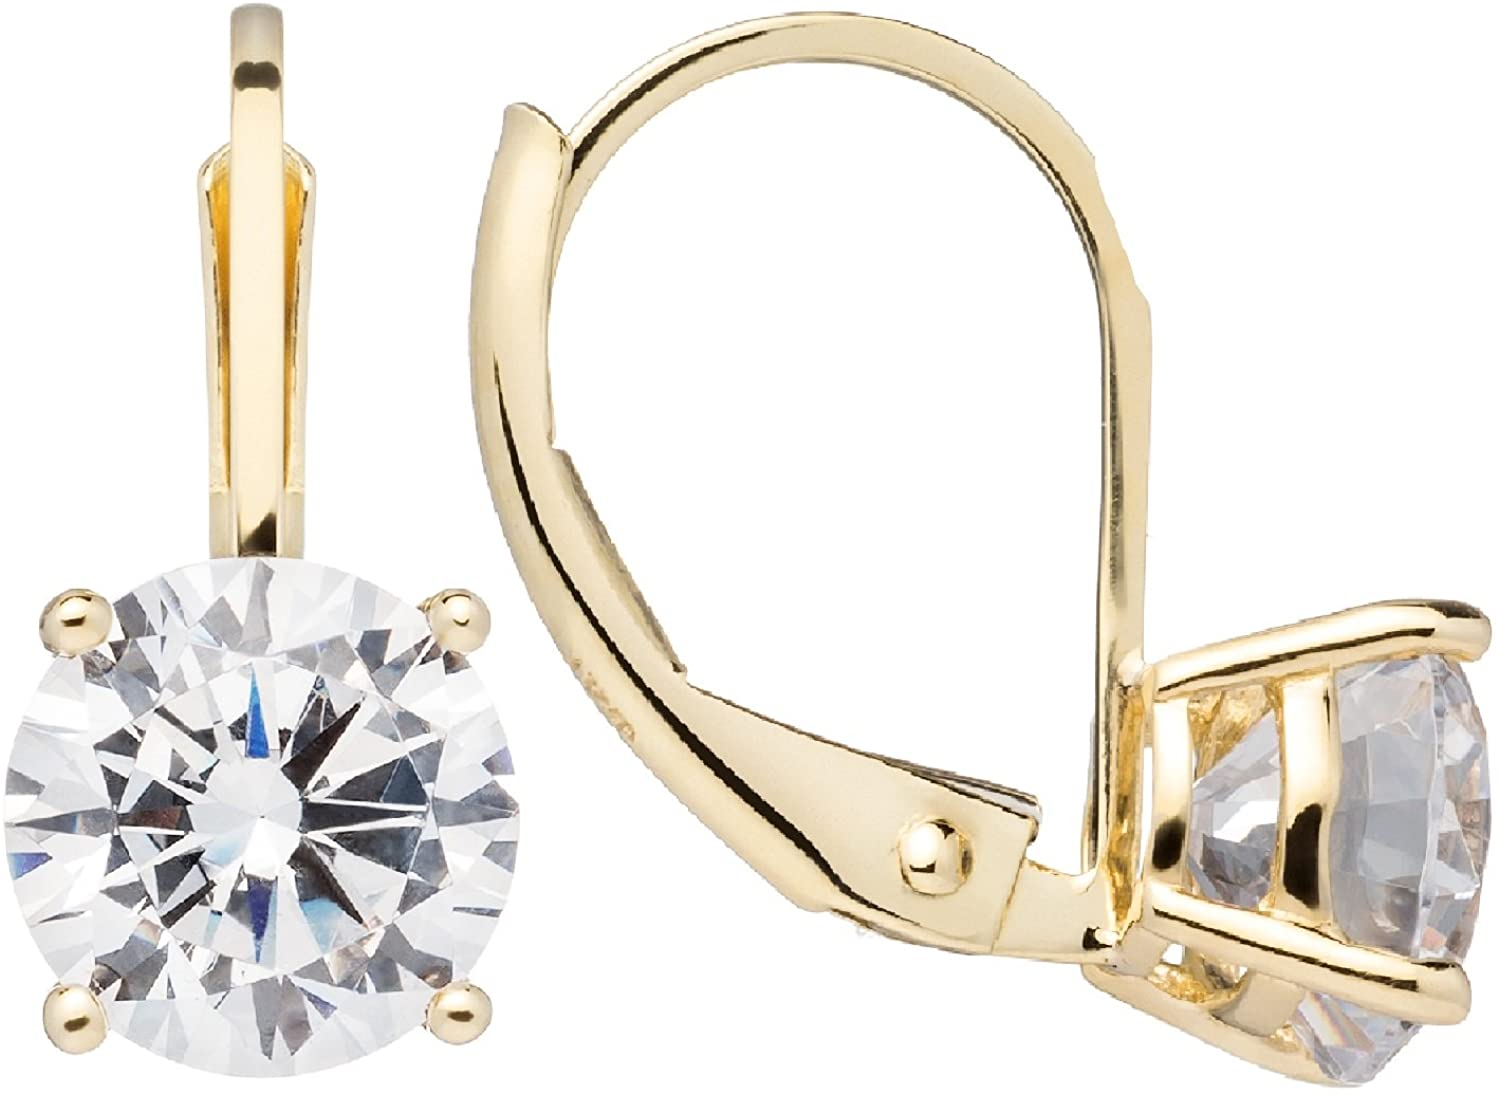 14K Solid White or Yellow Gold Earrings   Round Cut Cubic Zirconia   Leverback Drop Dangle Setting   .50-2.0 CTW   With Gift Box